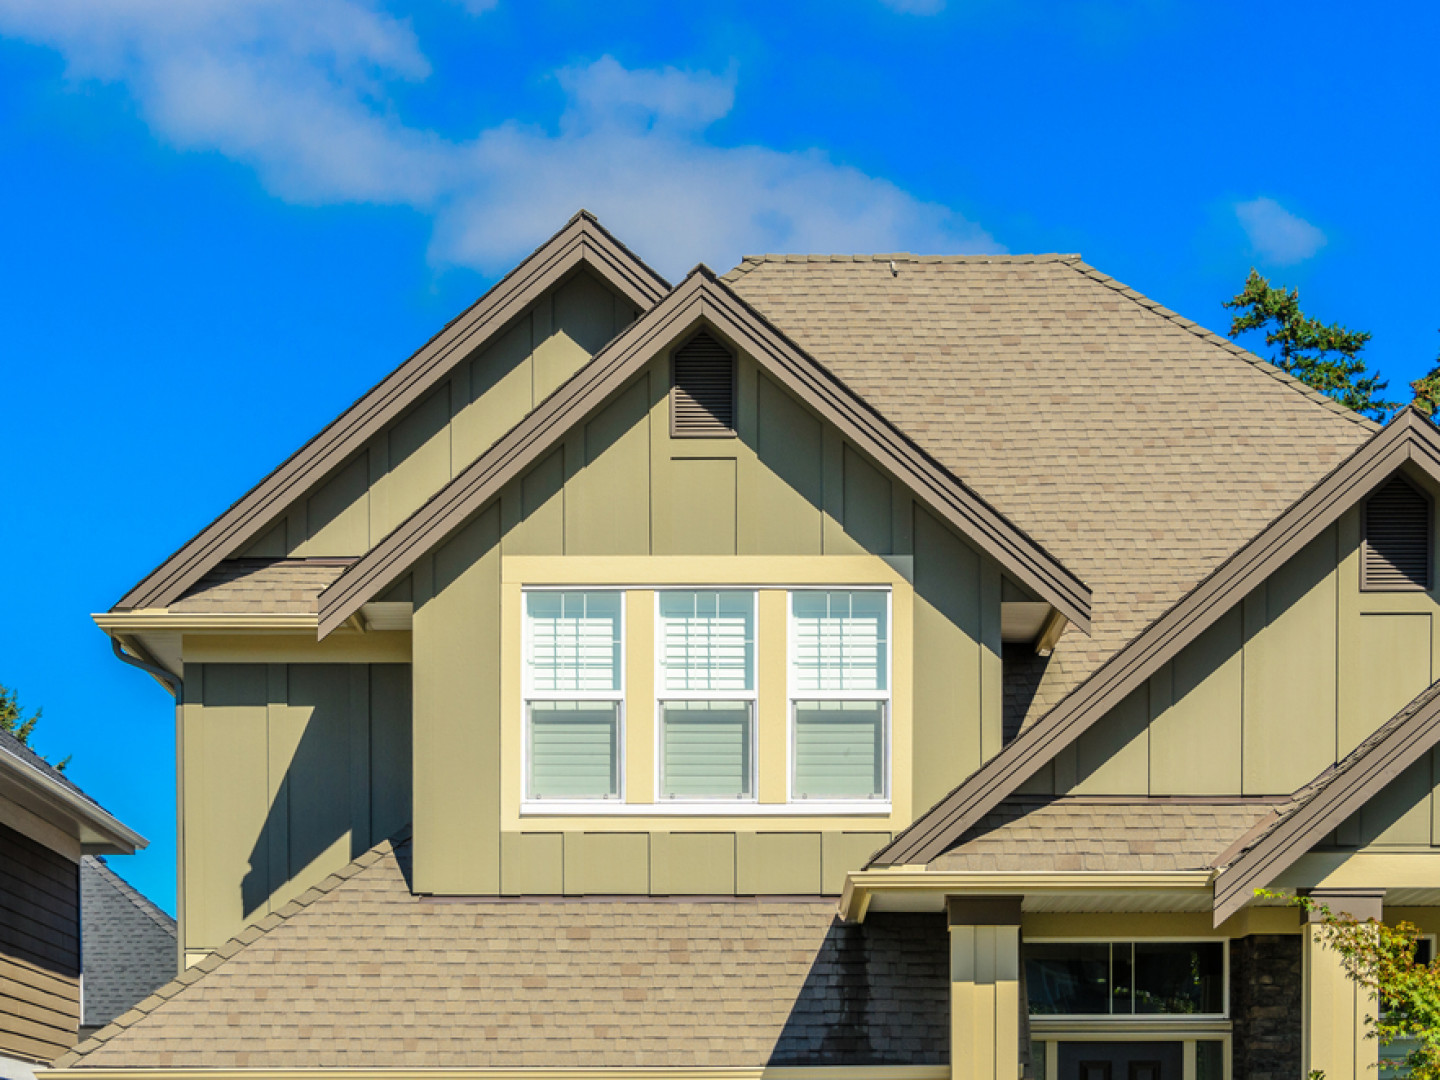 Roofing that can withstand the elements